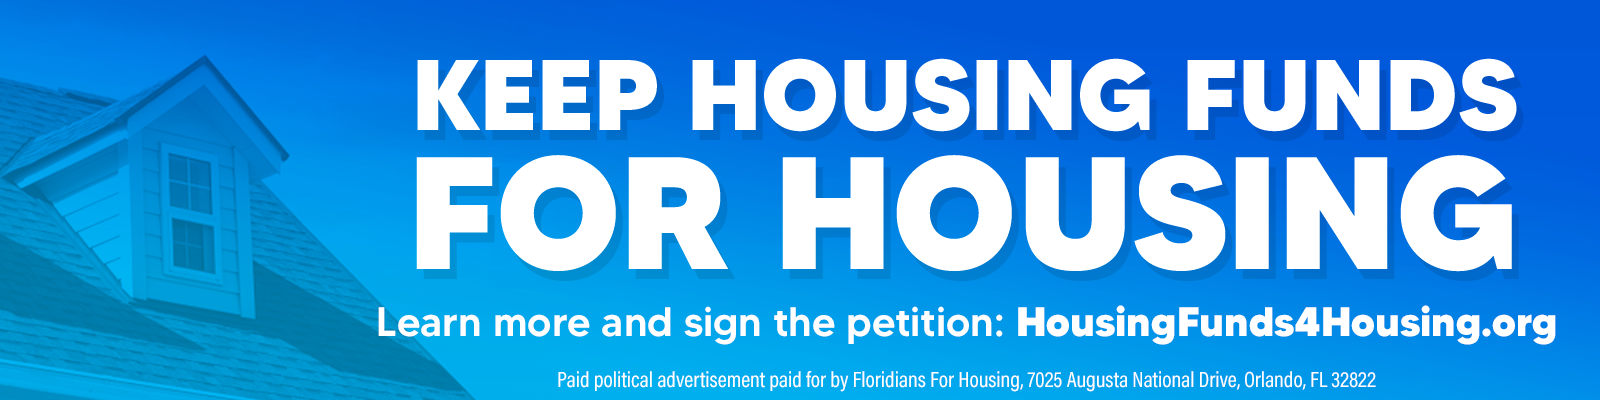 Keep Housing Funds for Housing